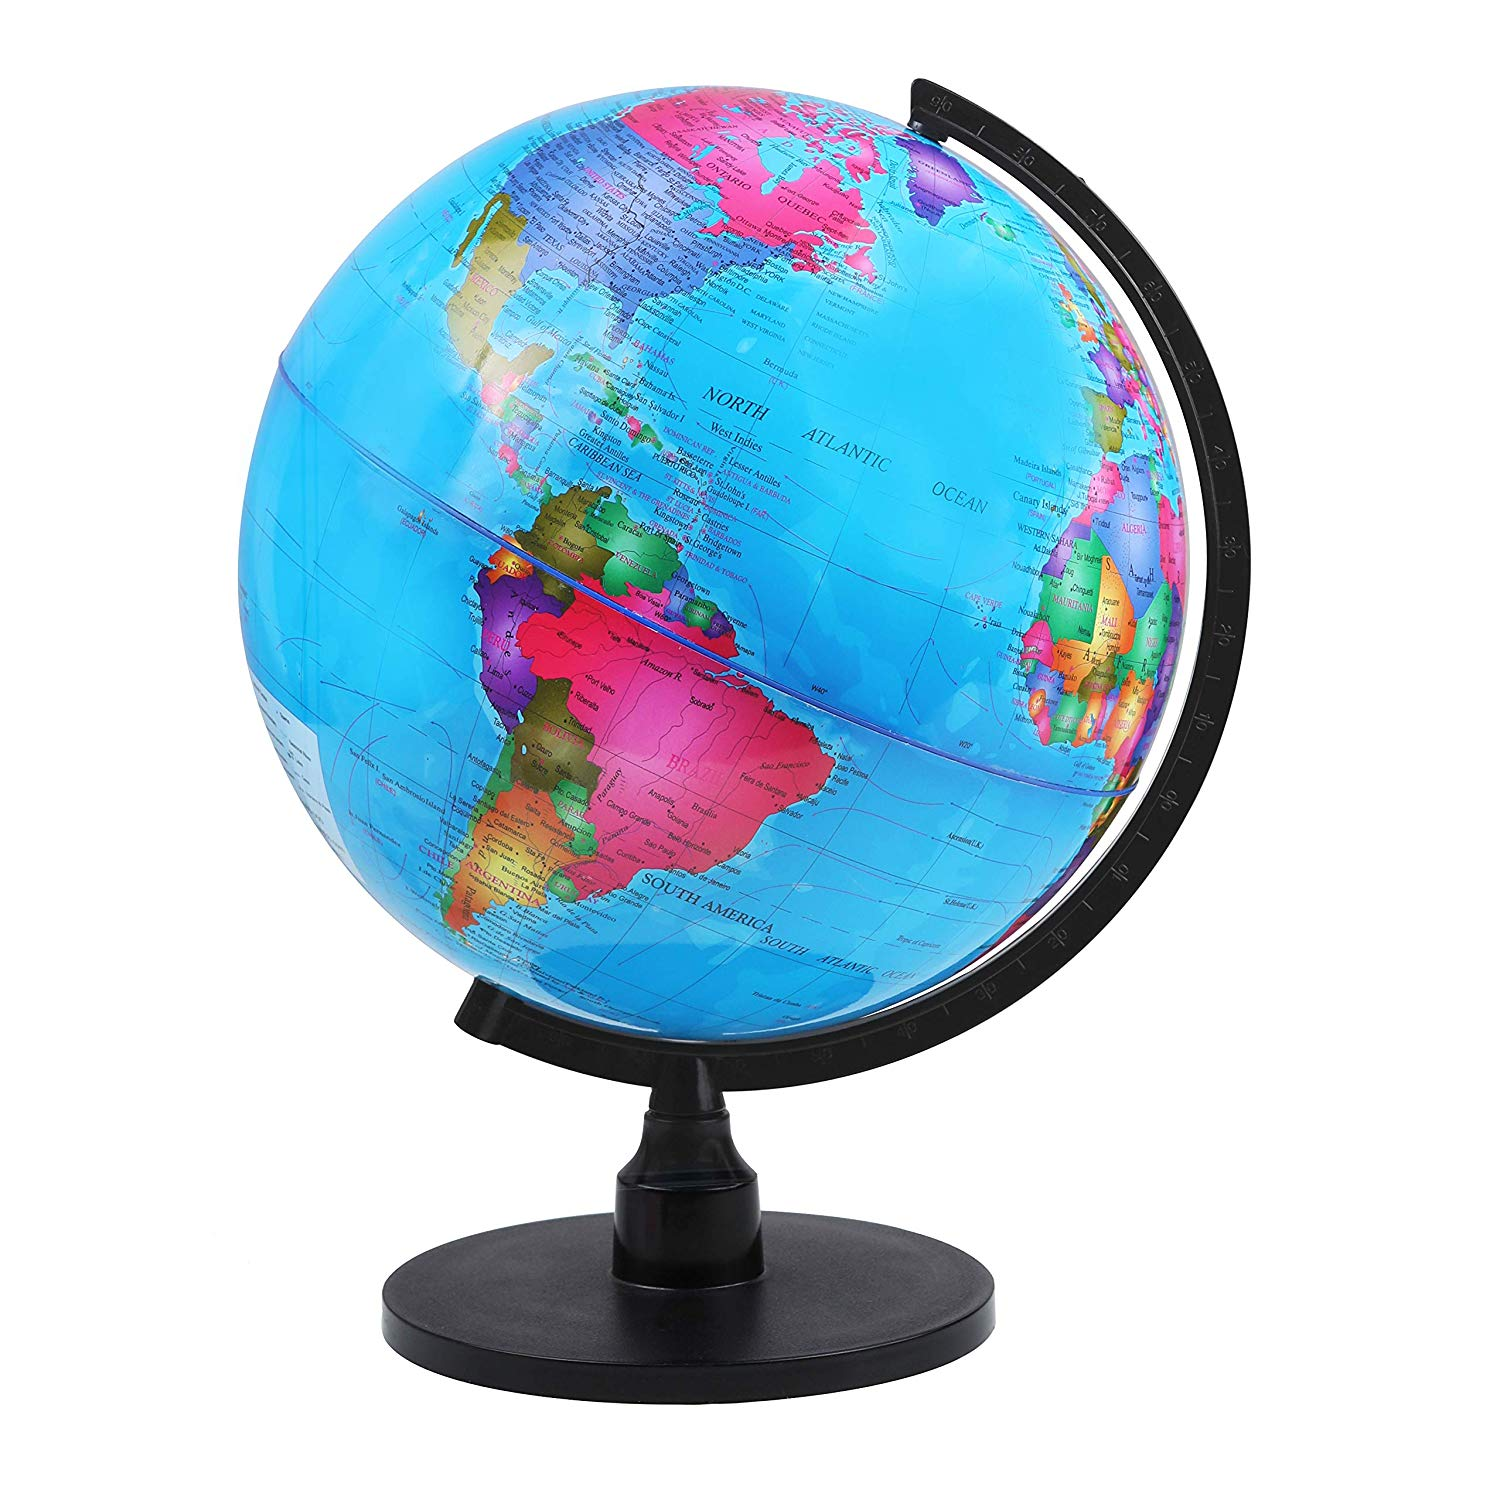 "IQ Toys 13"" Geographic Spinning World Globe with Stand, for Office Desks, Classrooms, Kids Geographic Learning"